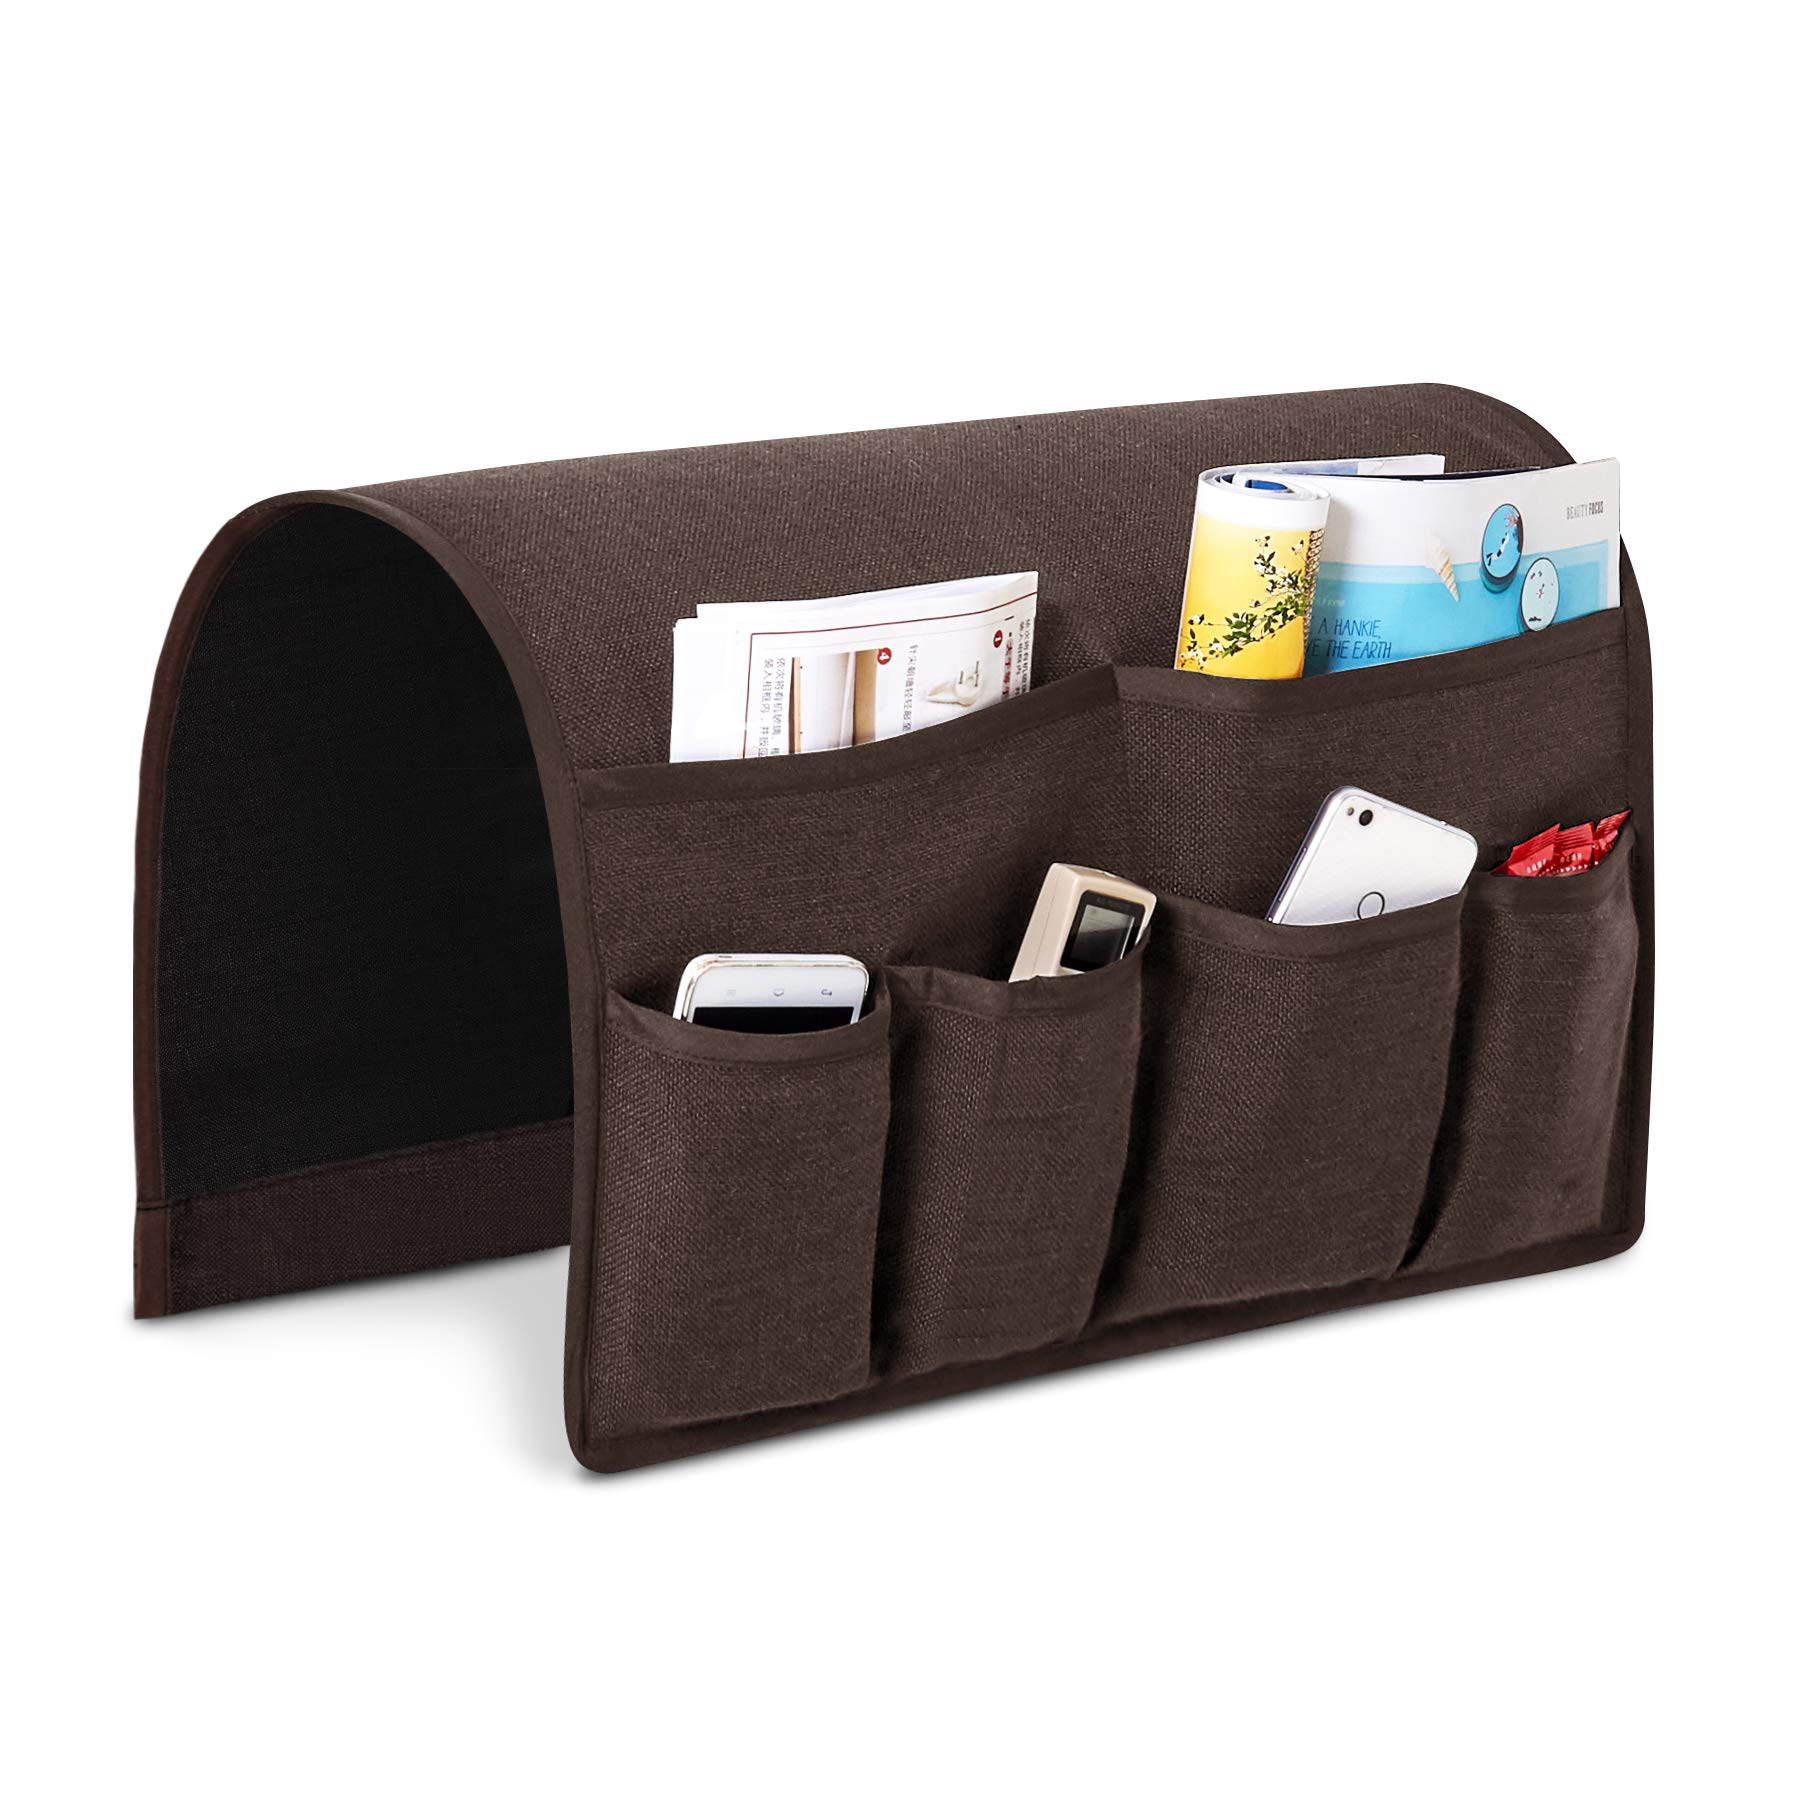 Joywell Sofa Armrest Pocket Organizer, Couch Arm Chair Caddy with 6 Pockets for Magazine, Books, TV Remote Control, Cell Phone, iPad (Chocolate)